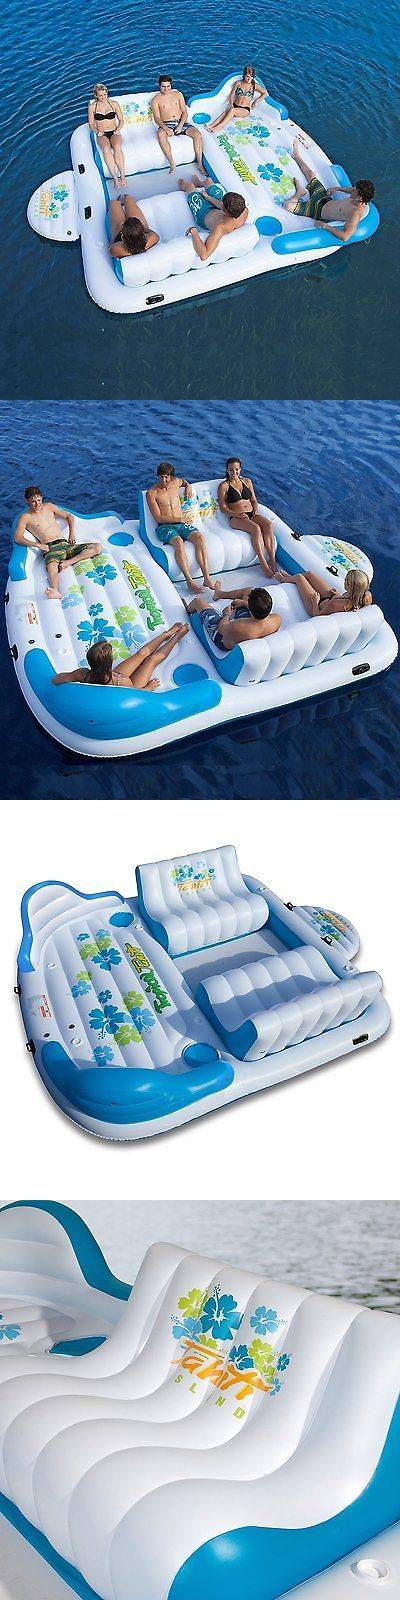 Inflatable Floats and Tubes 79801: Tropical Tahiti Inflatable Floating Island Raft 6 Person Sofa Cooler Lounge New BUY IT NOW ONLY: $299.99